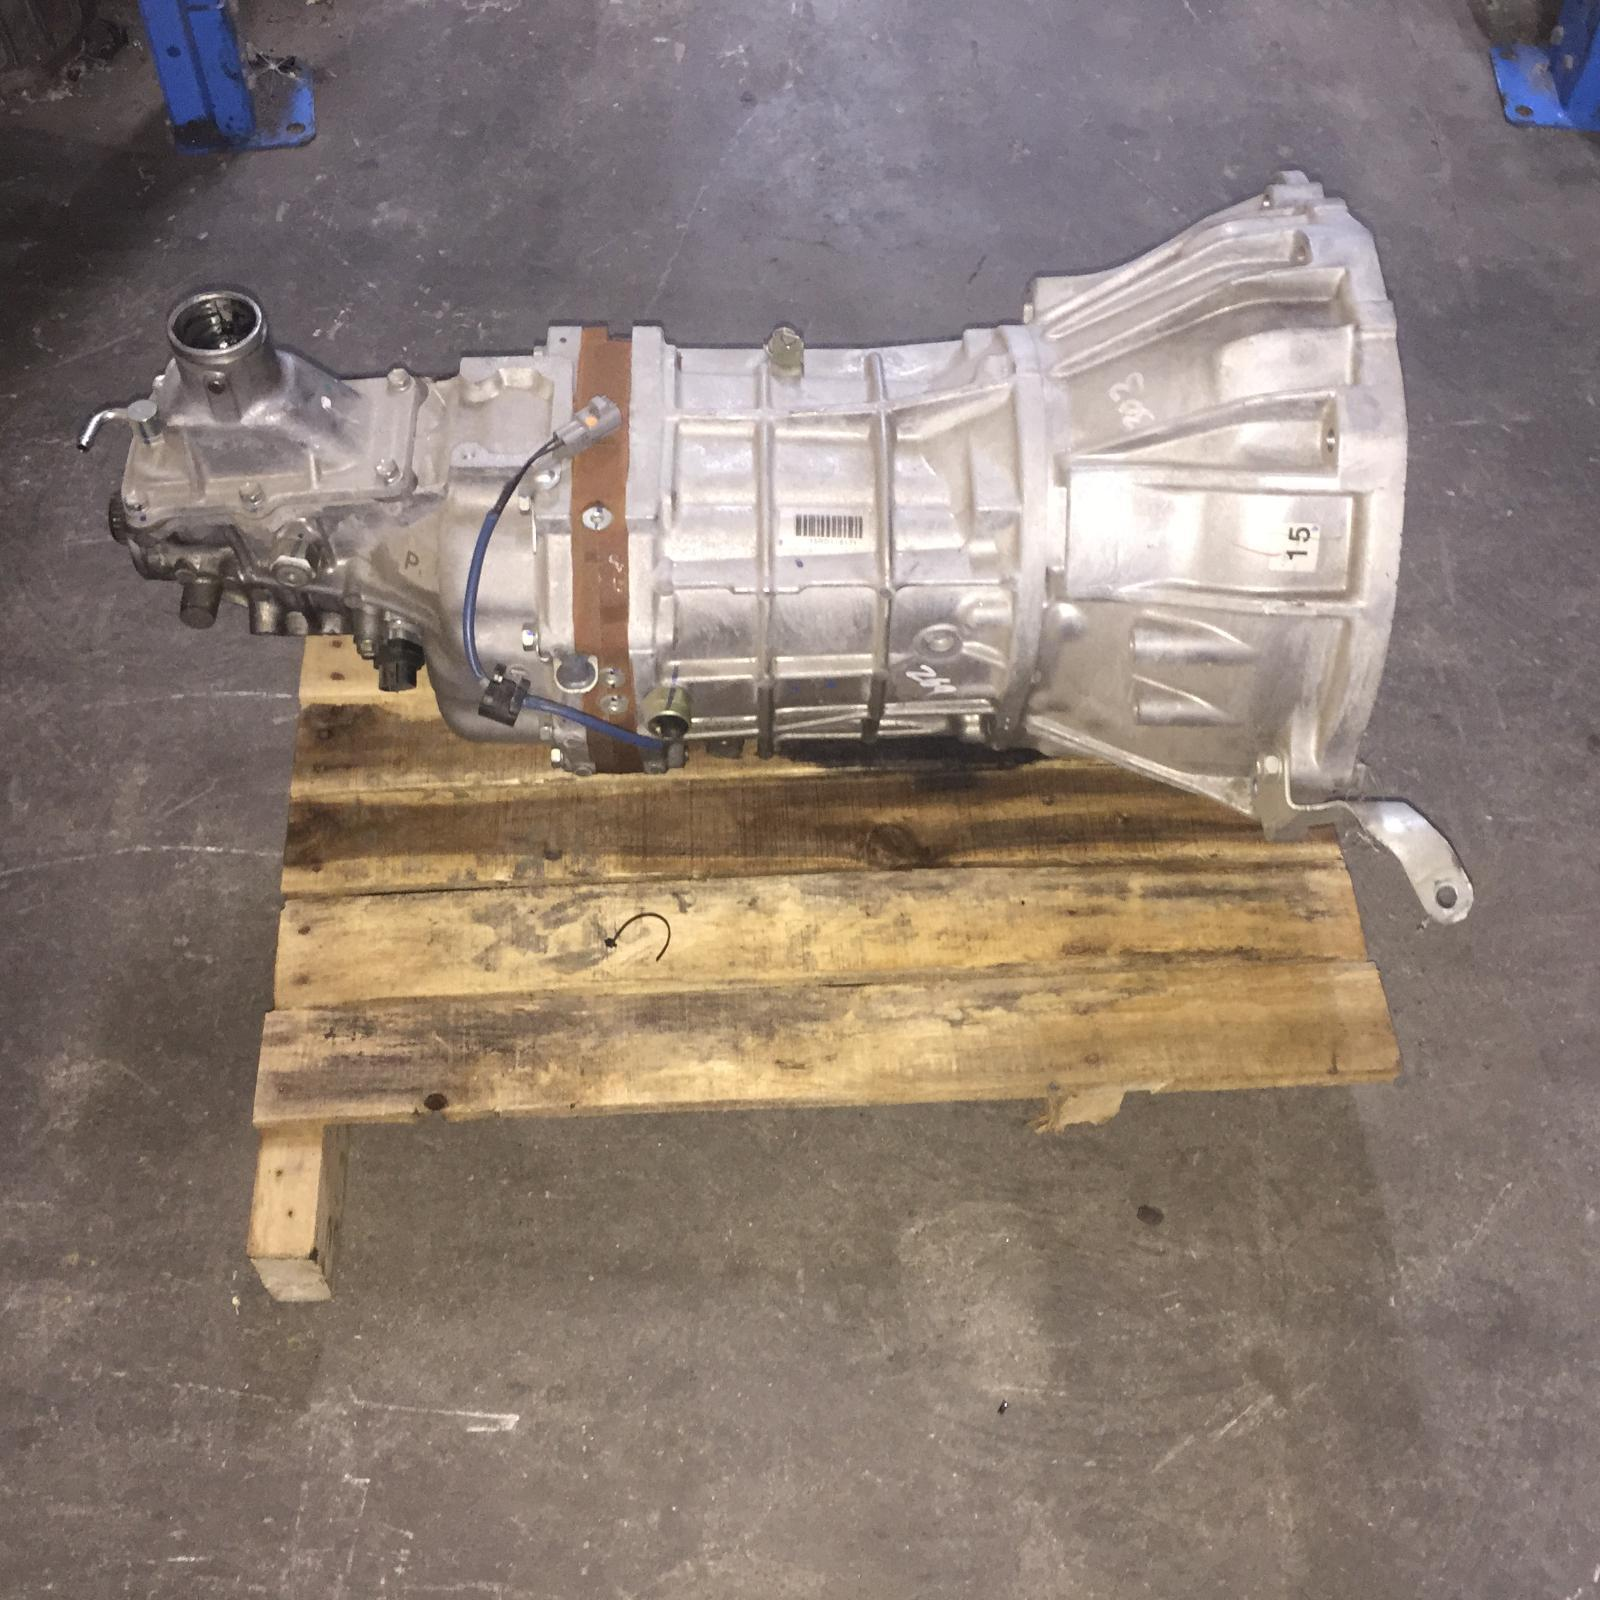 TOYOTA HILUX, Trans/Gearbox, MANUAL, 2WD, PETROL, 2.7, 2TR-FE, 03/05-08/15